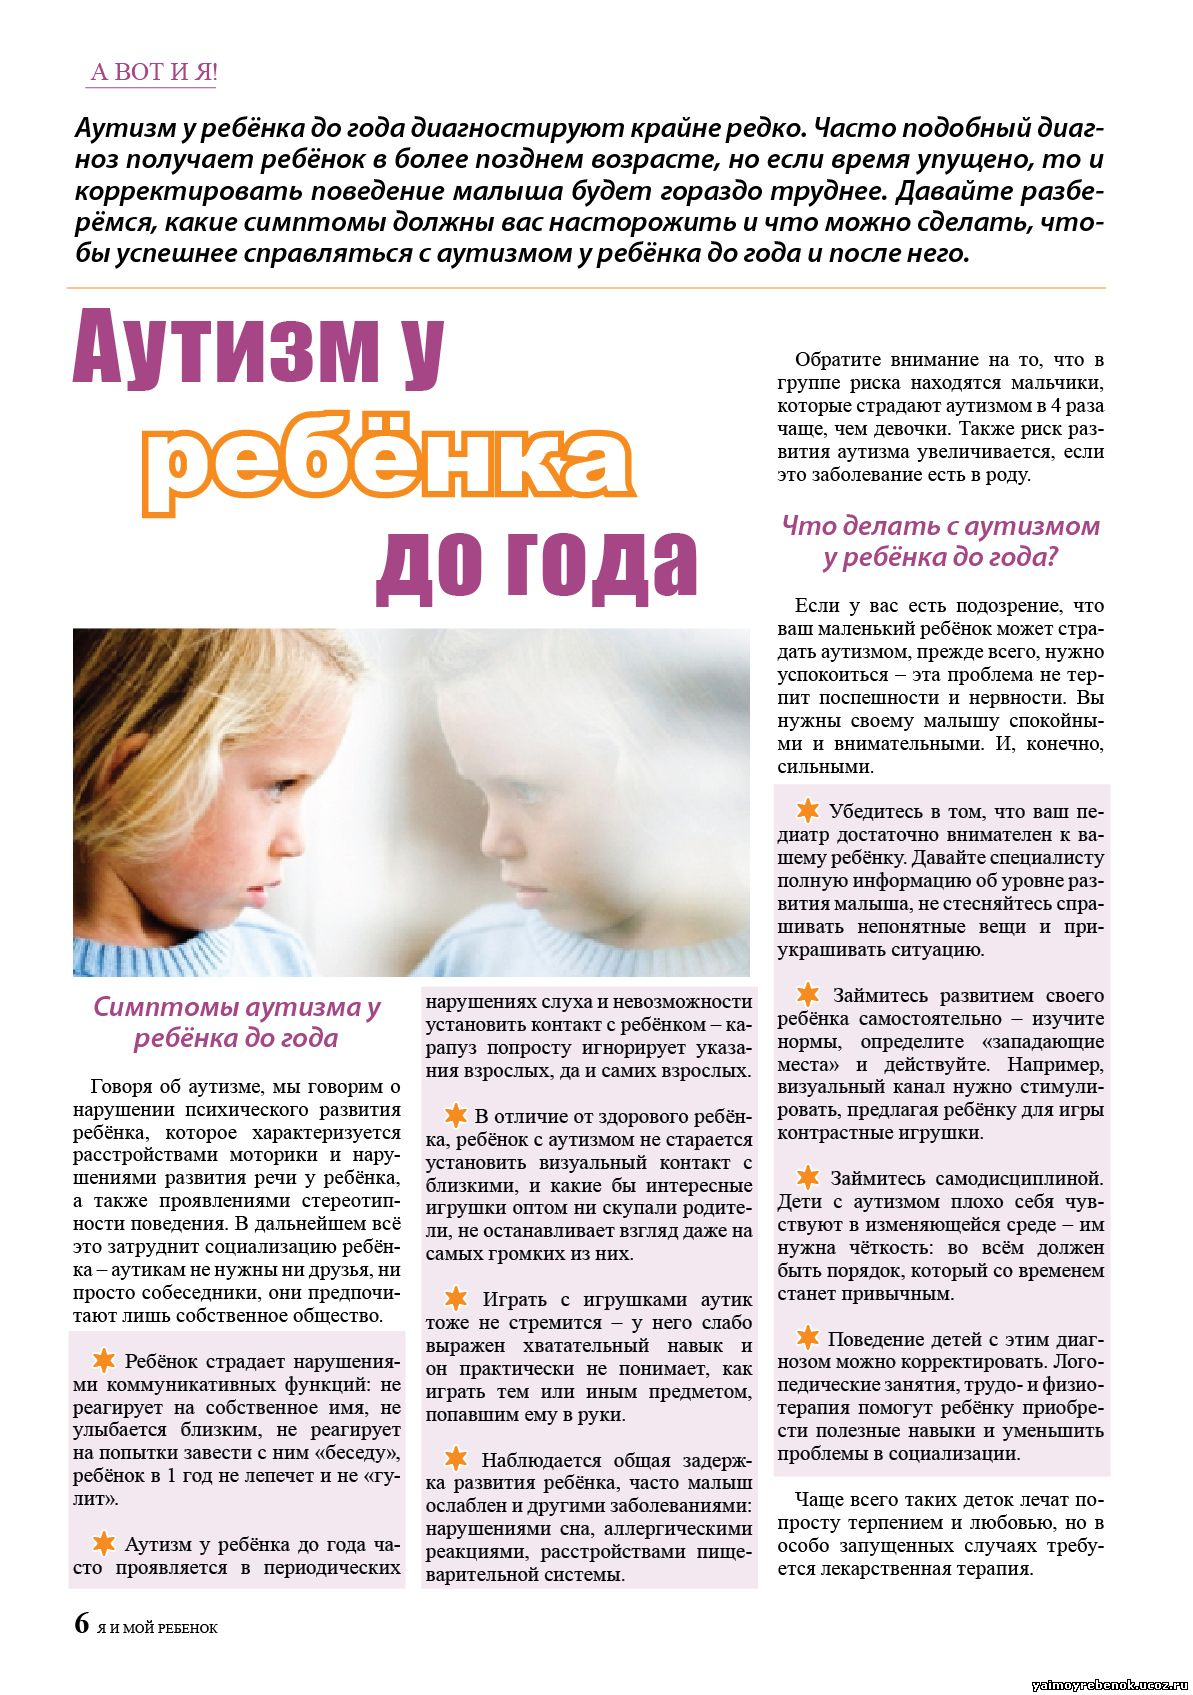 a report on the childhood disease autism Conclusion the observation in this case report and in two previous reports which documented association between oculocutaneous albinism and childhood autism both in the affected individuals and families of individuals with childhood autism, raises the question of a possible genetic and clinical association between oculocutaneous albinism and childhood autism.